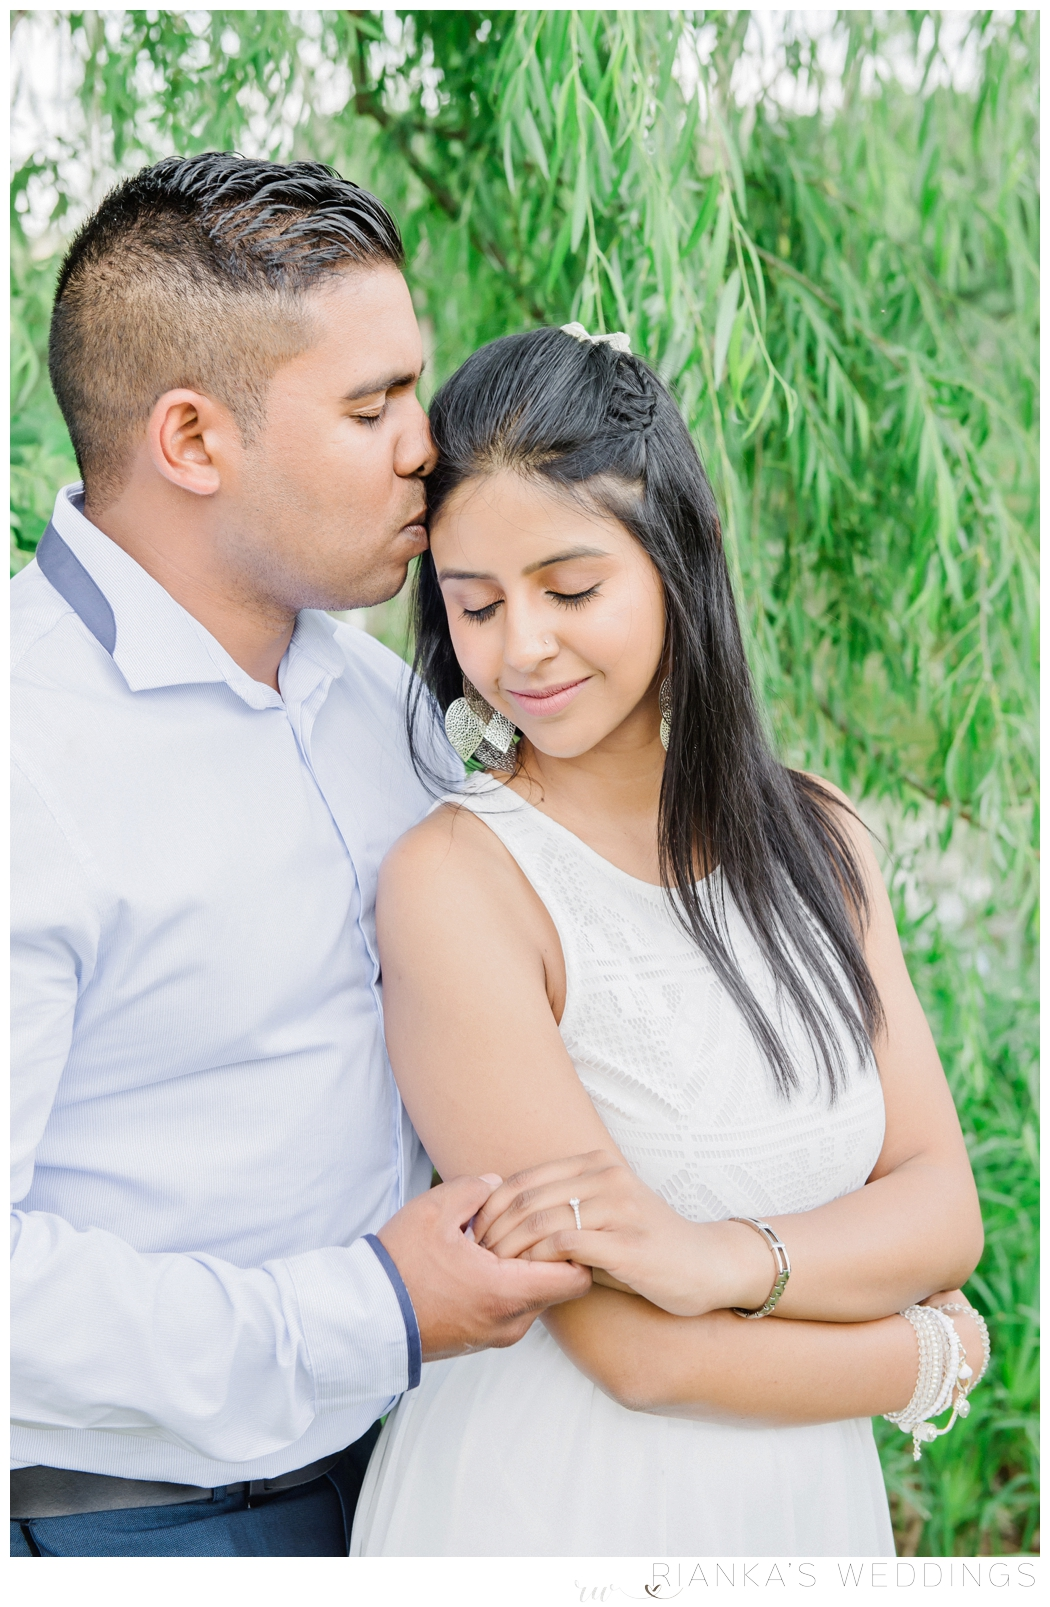 riankas-wedding-photography-toadbury-hall-engagement-risha-kreyan00026